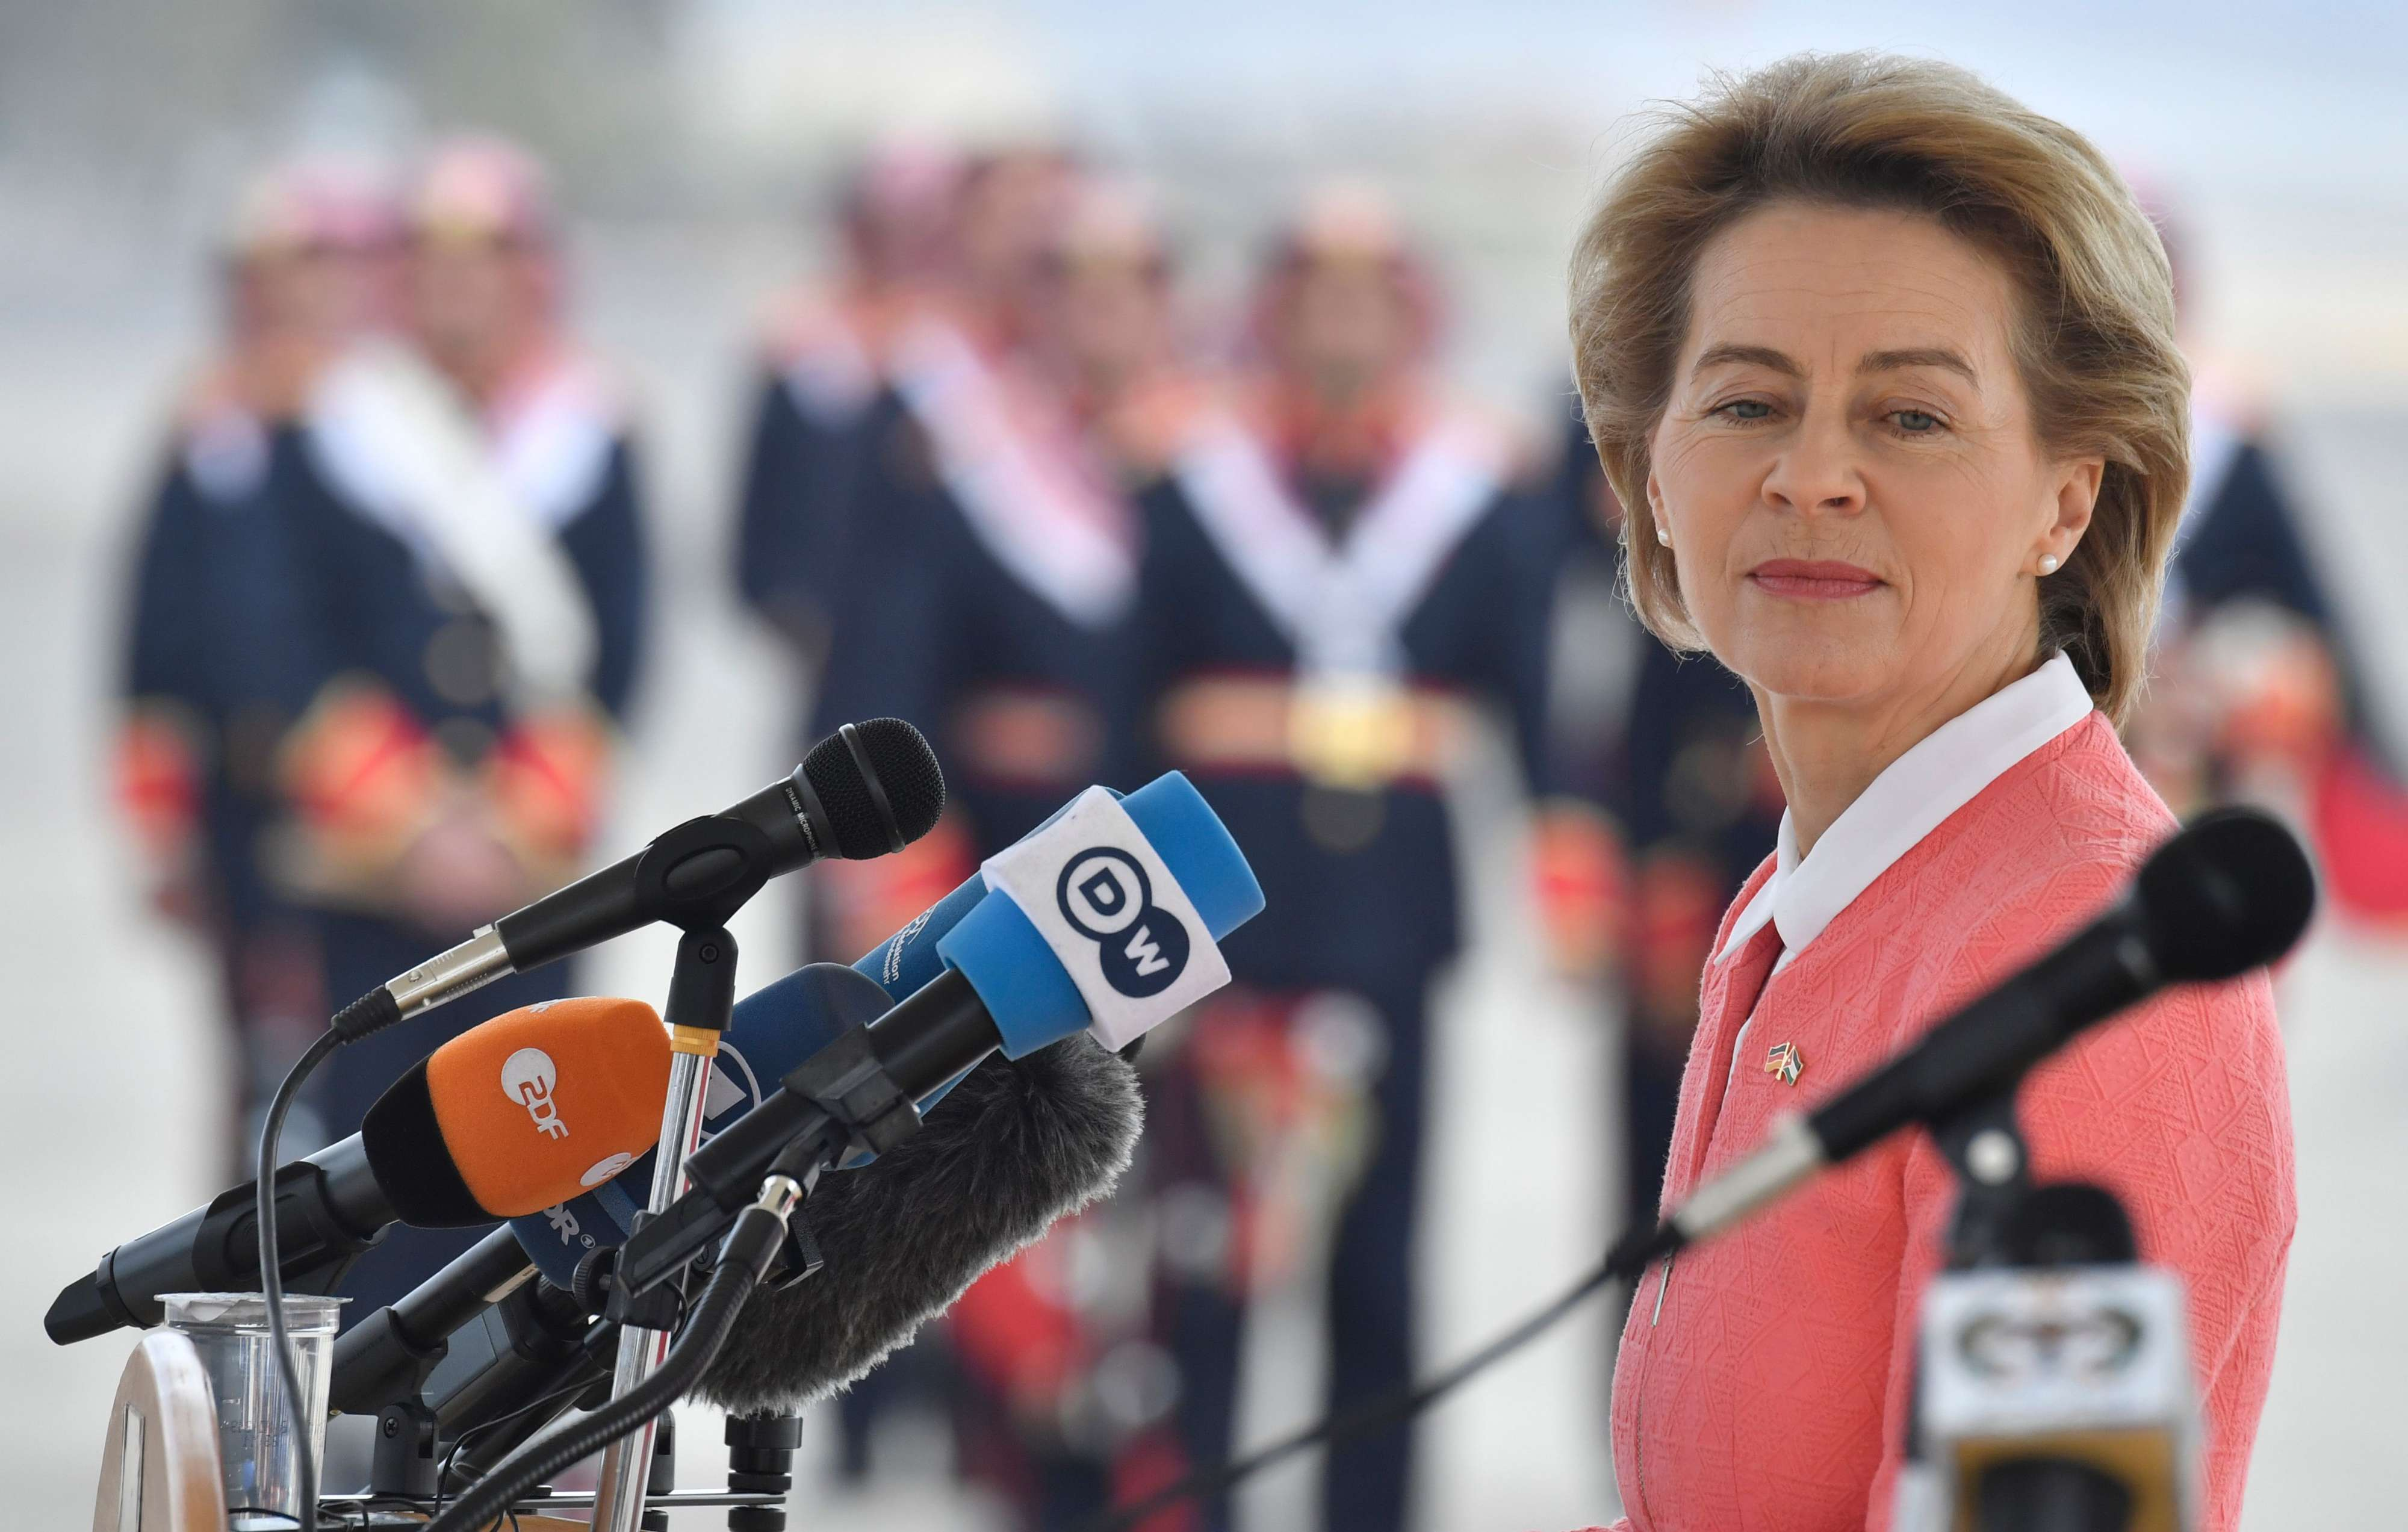 German Defence Minister Ursula von der Leyen during a handing over ceremony at Marka International Airport in Amman, on January 14.  (AFP)